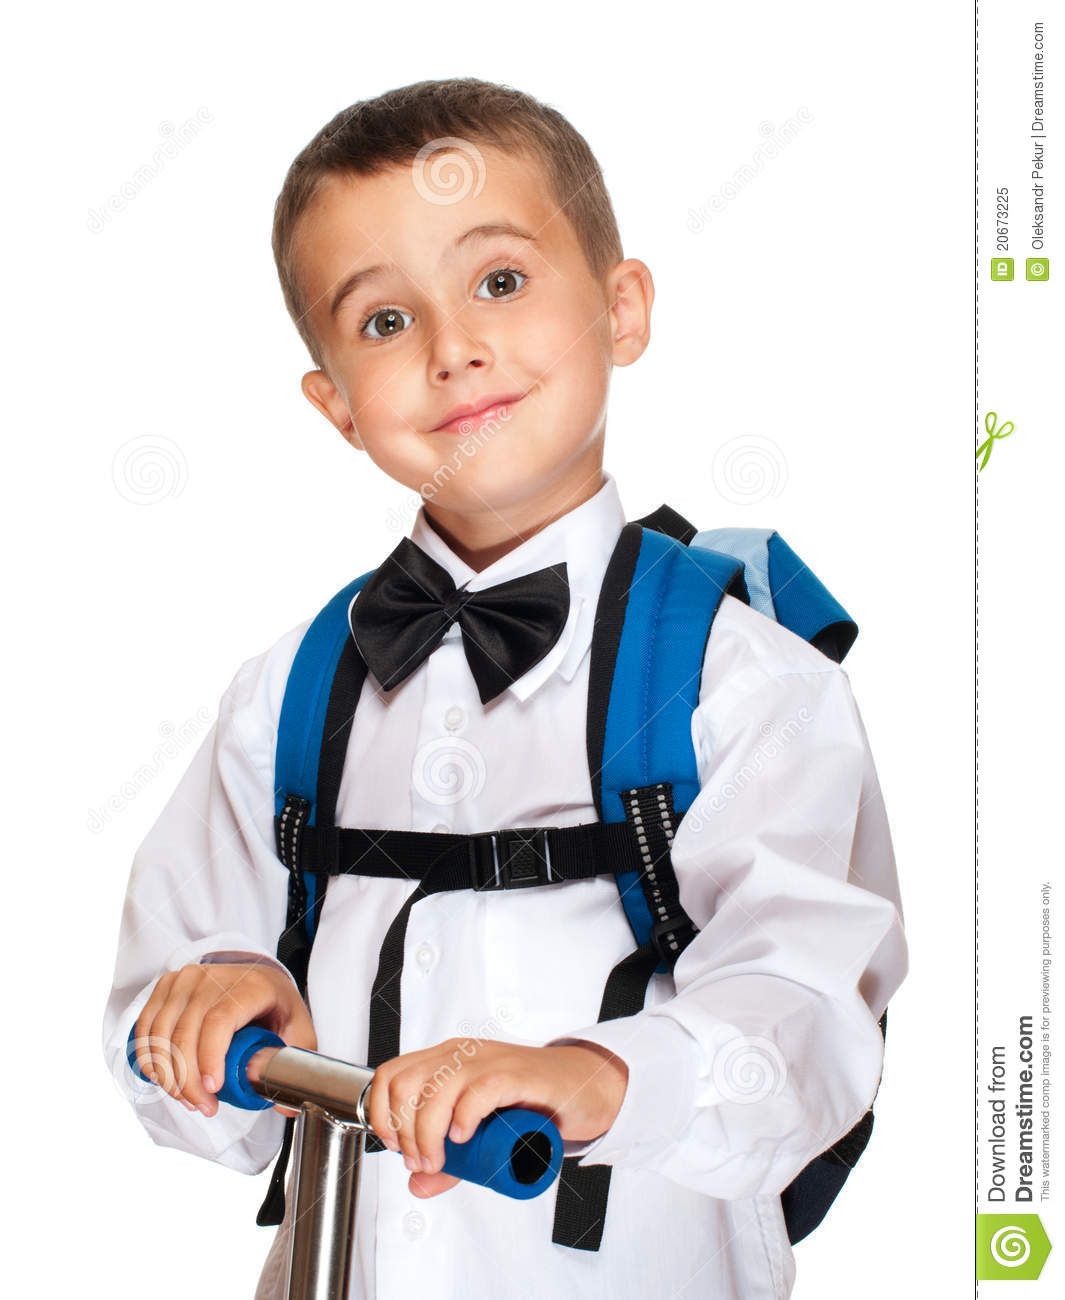 Elementary student boy with backpack and scooter isolated on white.